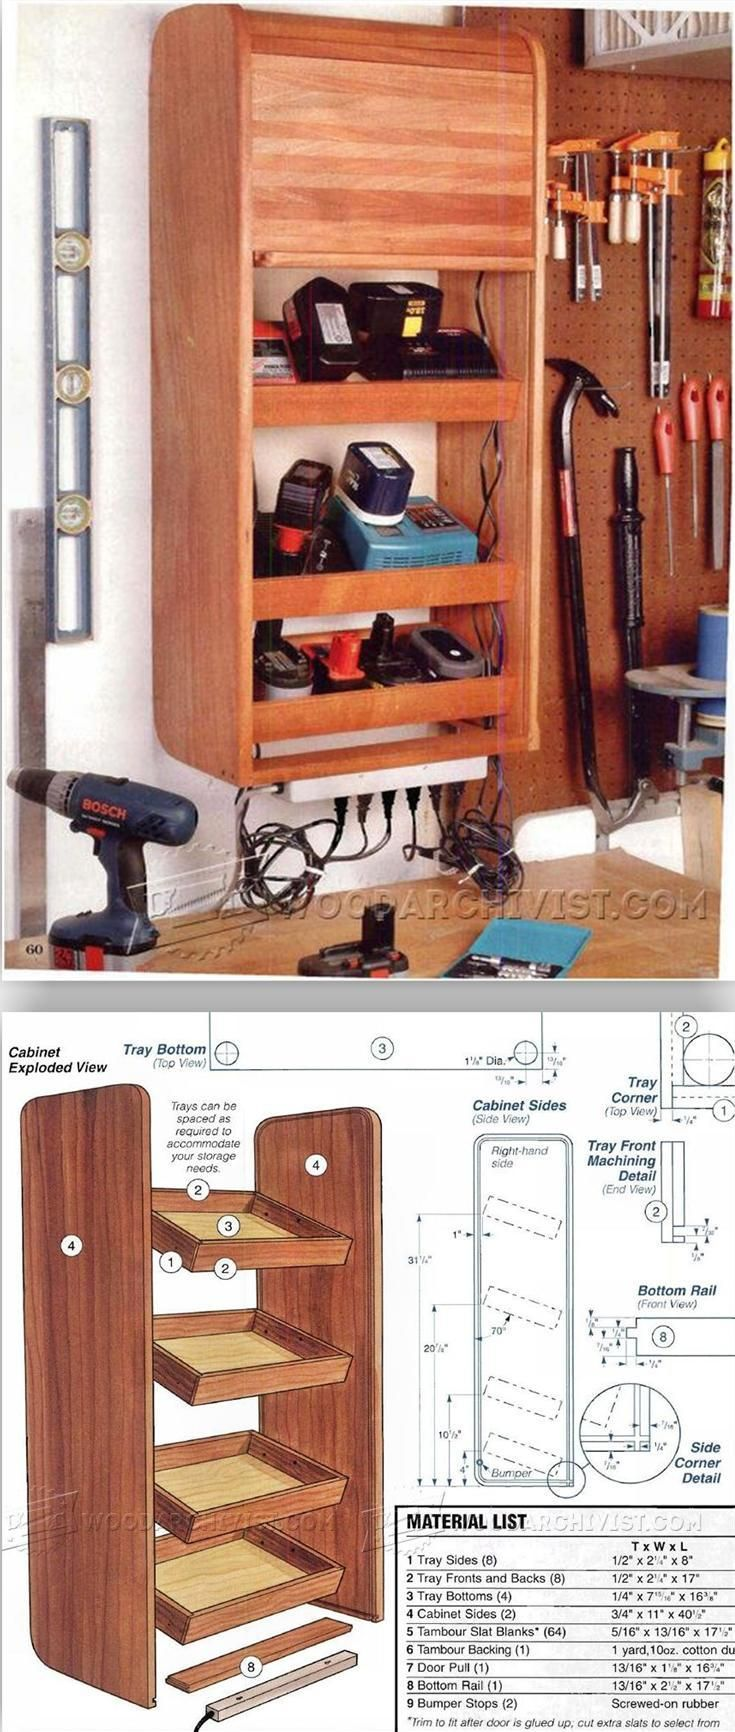 Cordless Tool Charging Cabinet Plans - Workshop Solutions Plans, Tips and Tricks | WoodArchivist.com